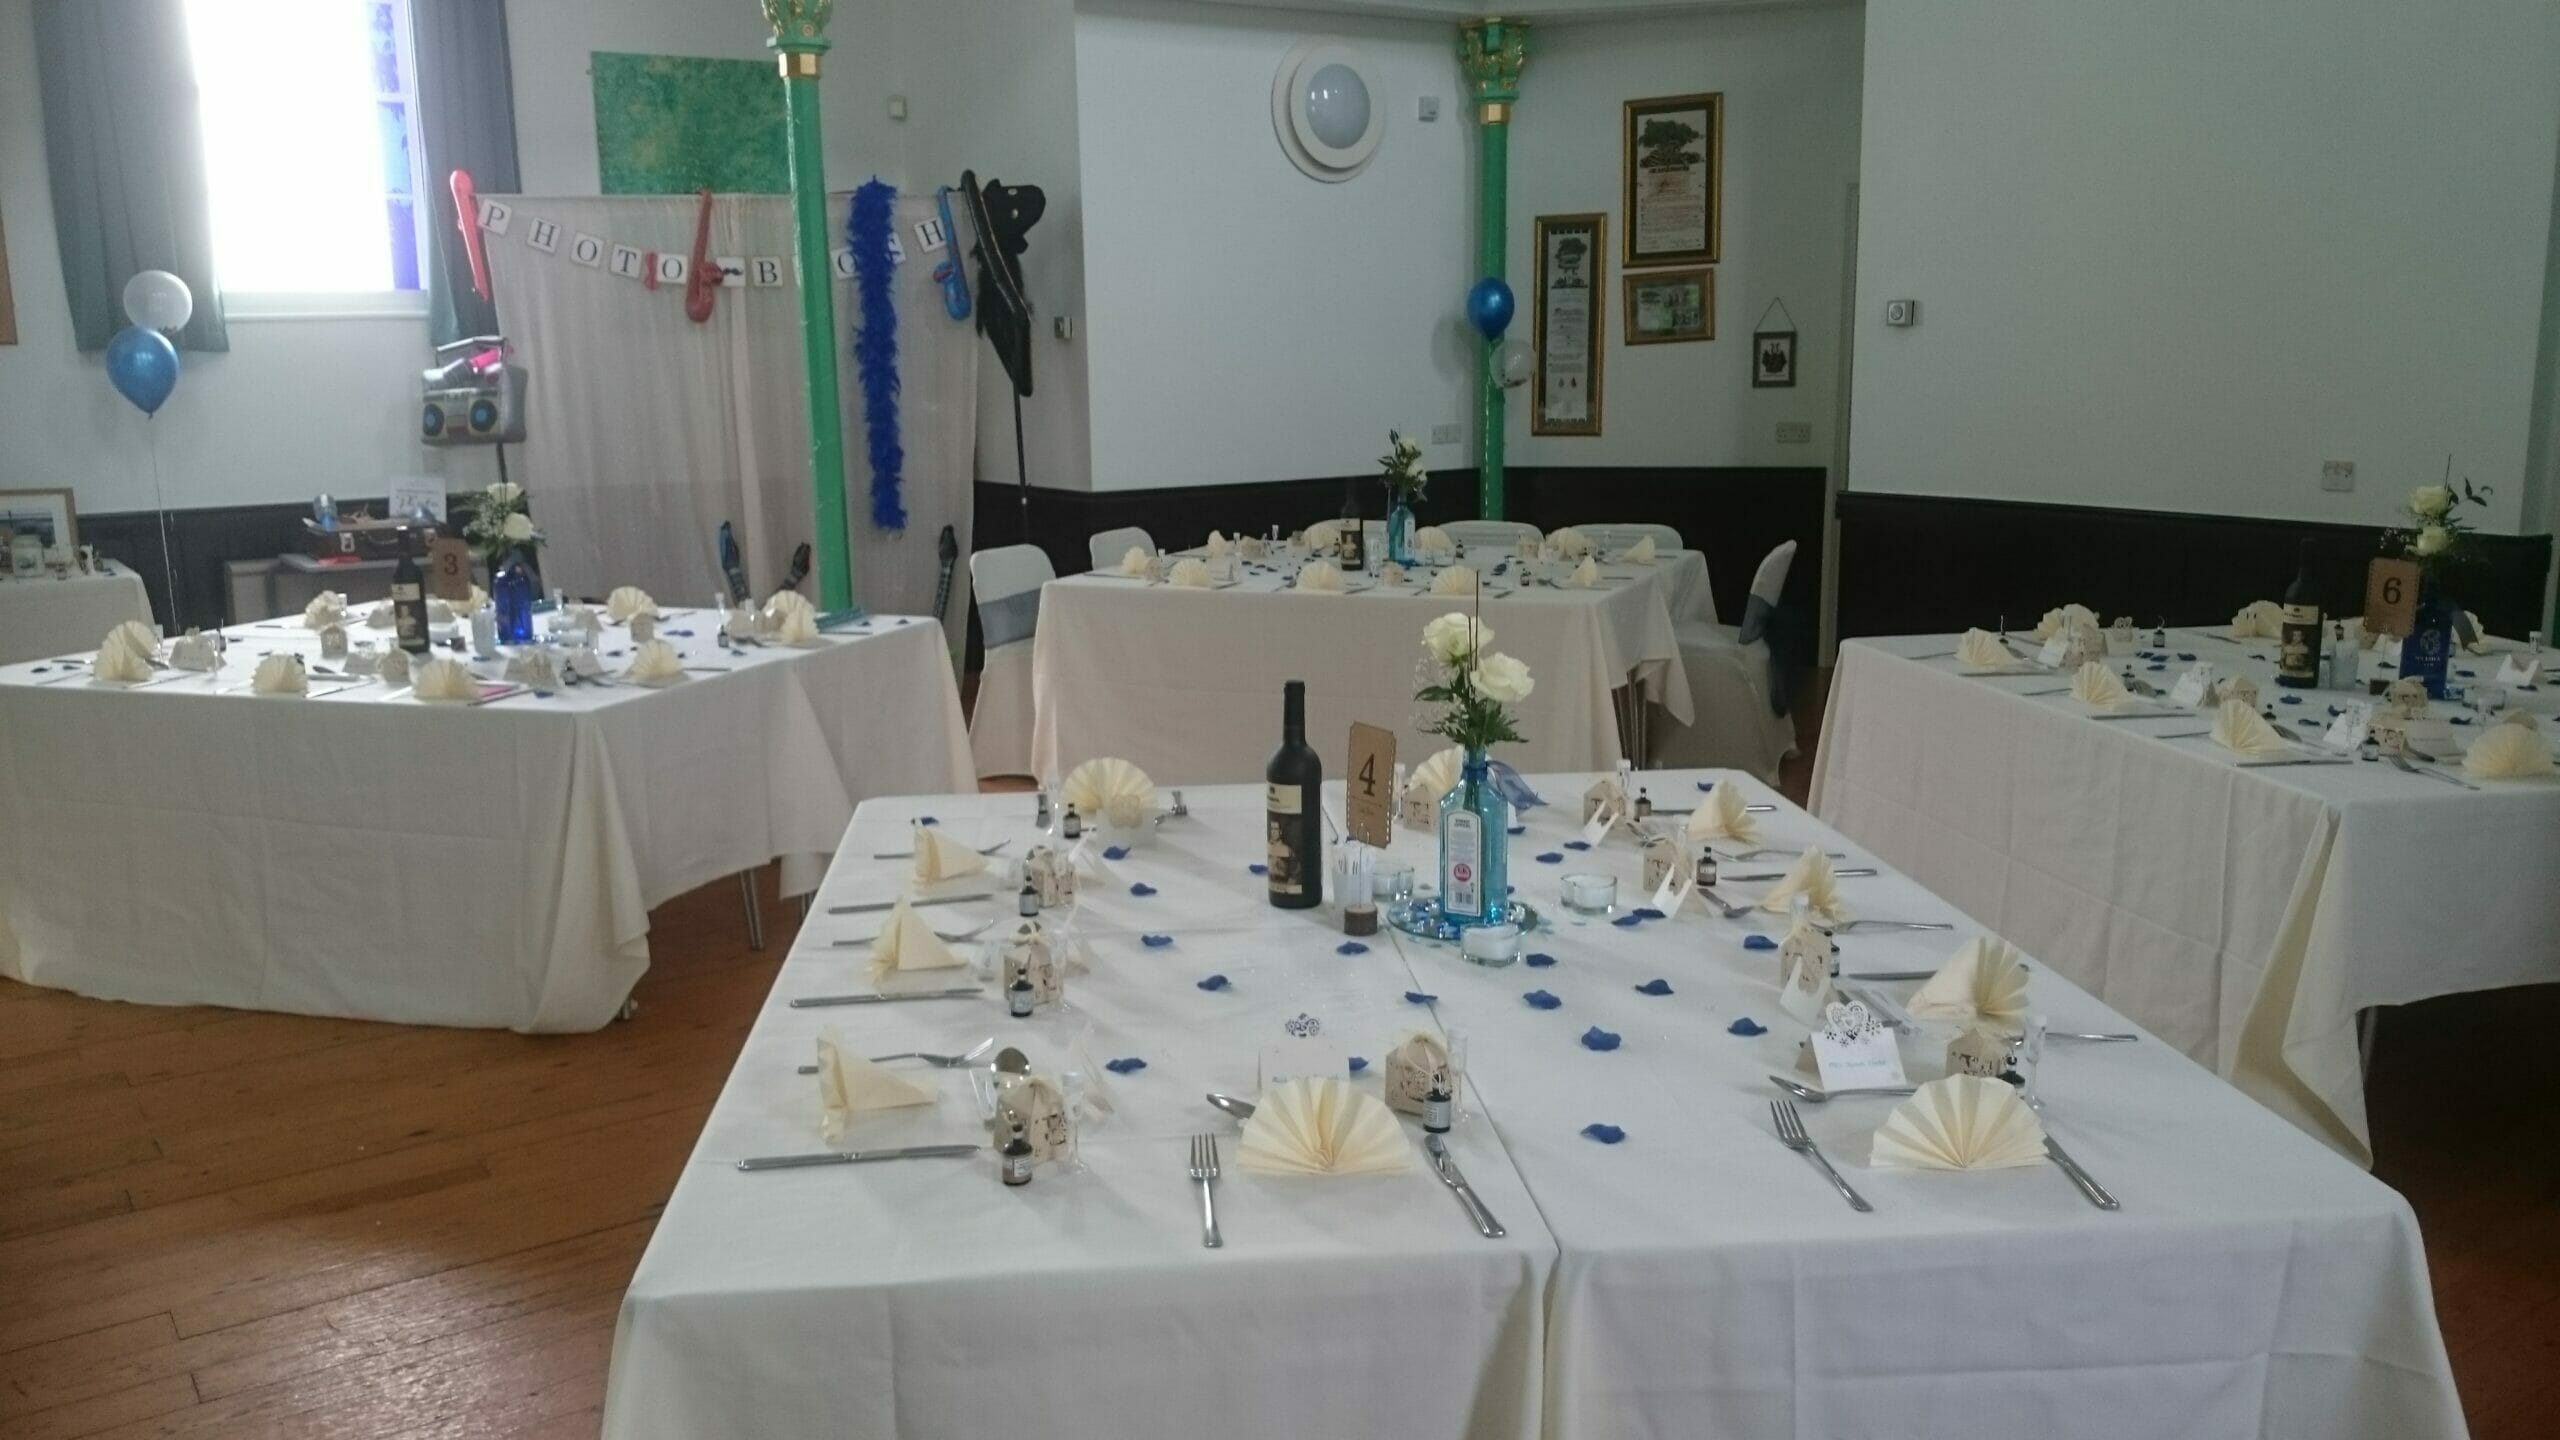 Photo shows a room layout with square tables